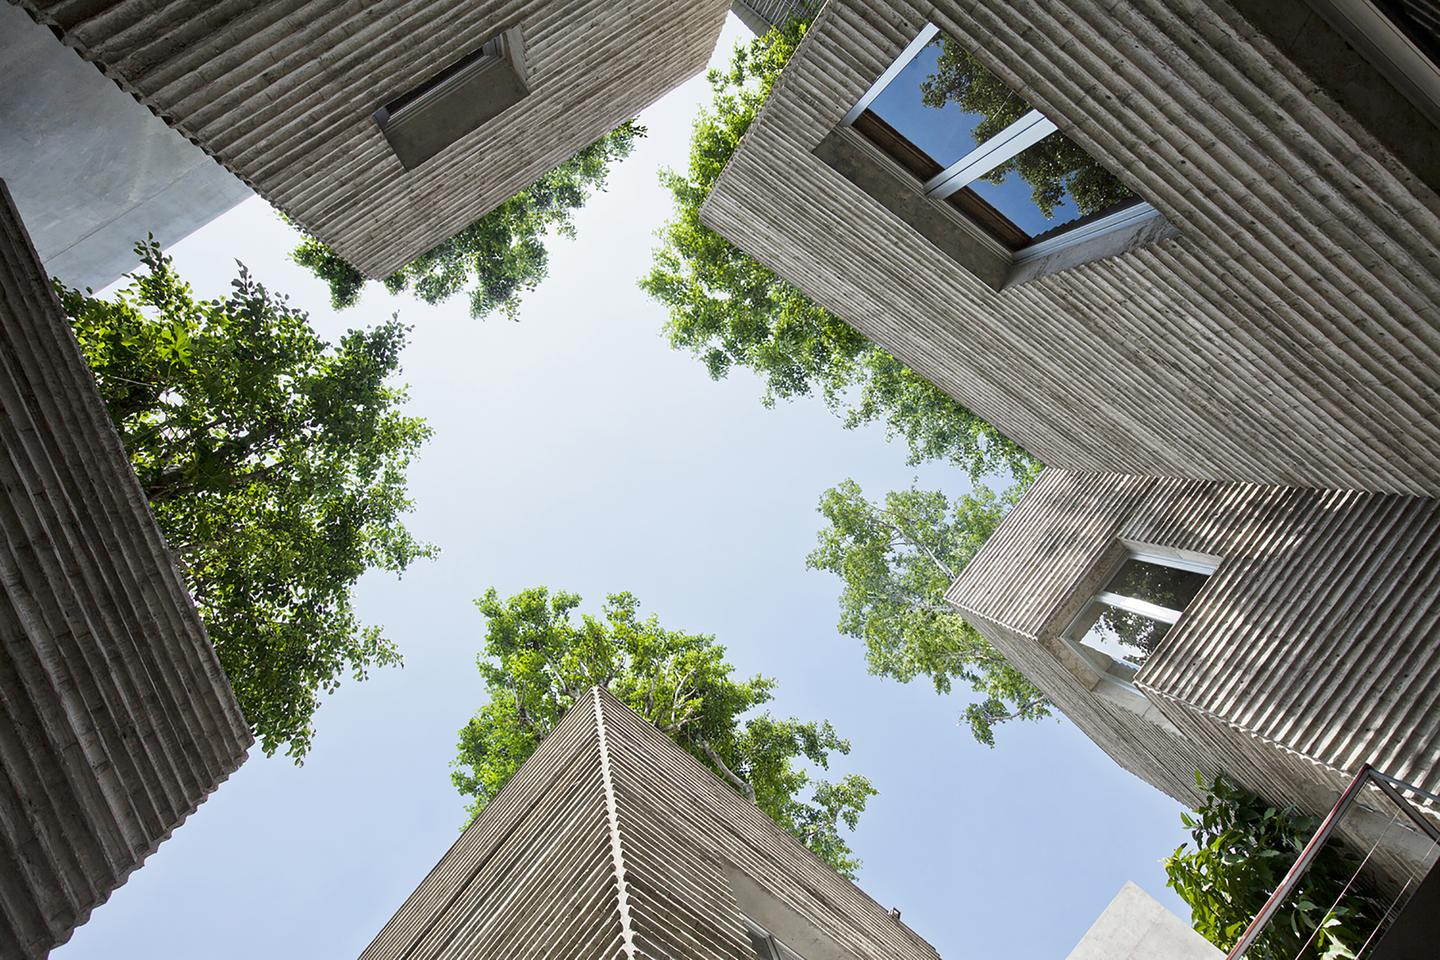 House for Trees, by Vo Trong Nghia Architects (Photo: Hiroyuki Oki)